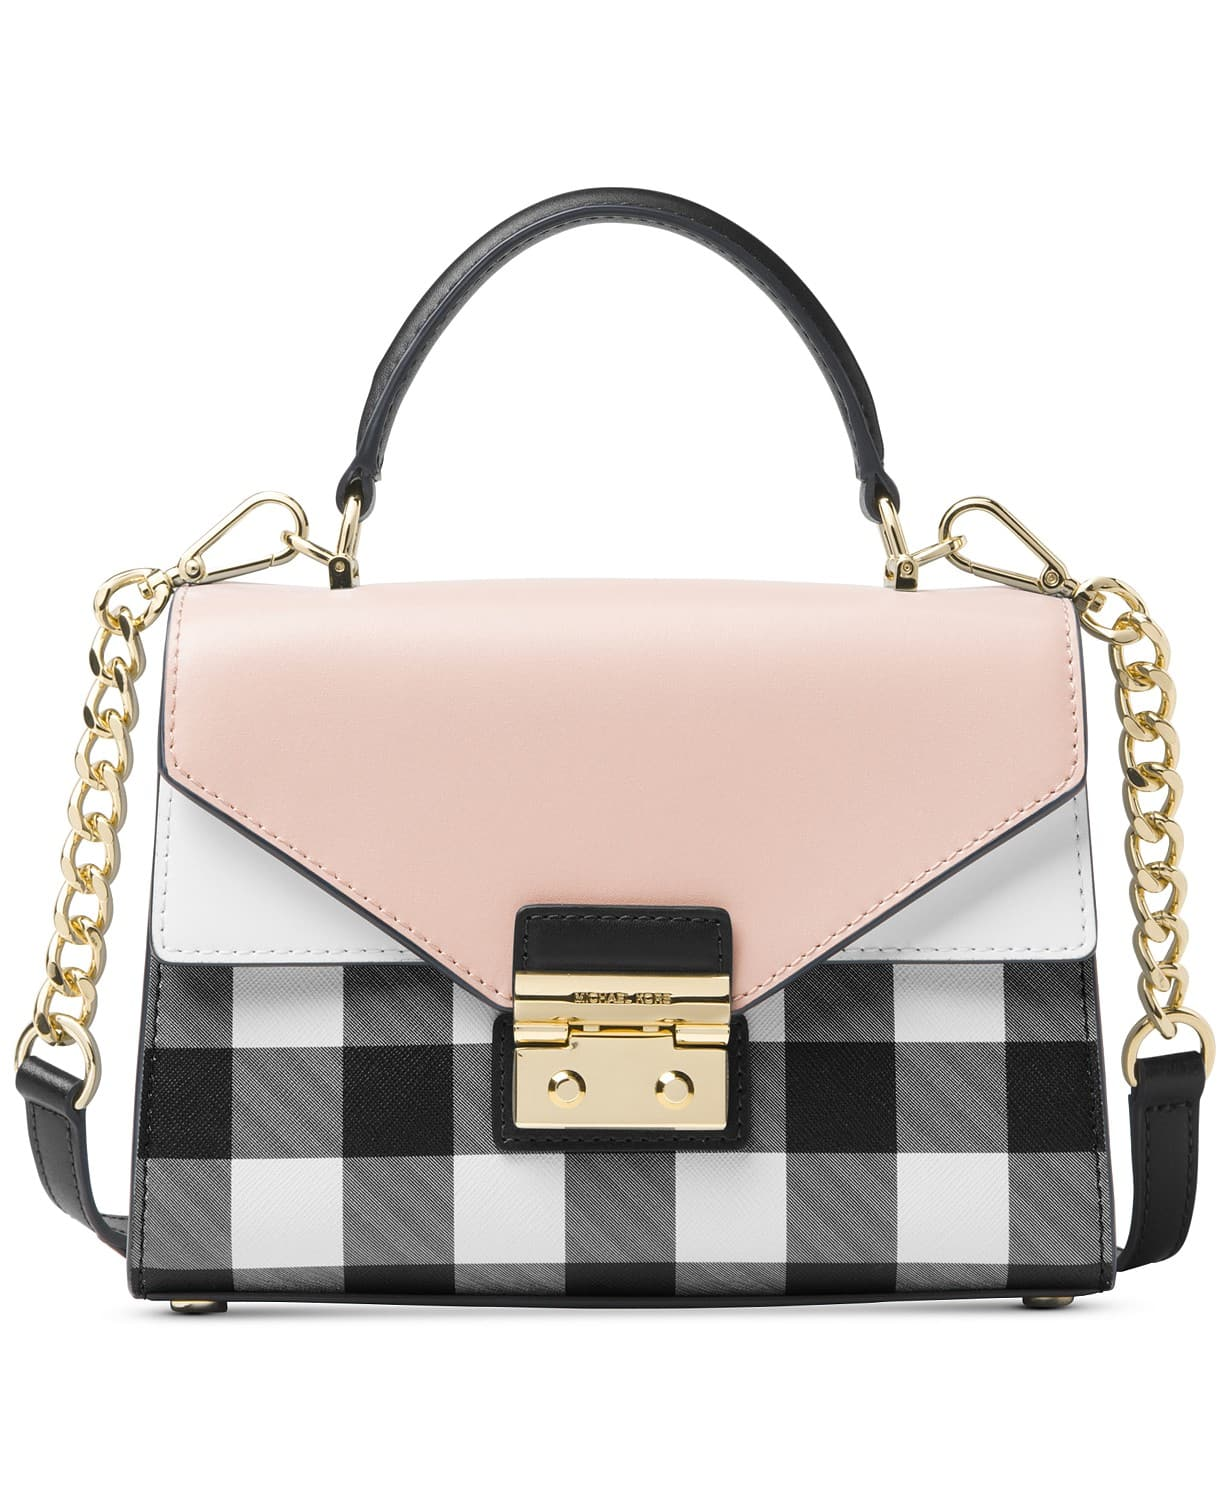 Michael Kors Sloan Gingham Small Top-Handle Satchel for $137 @Macy's+free shipping